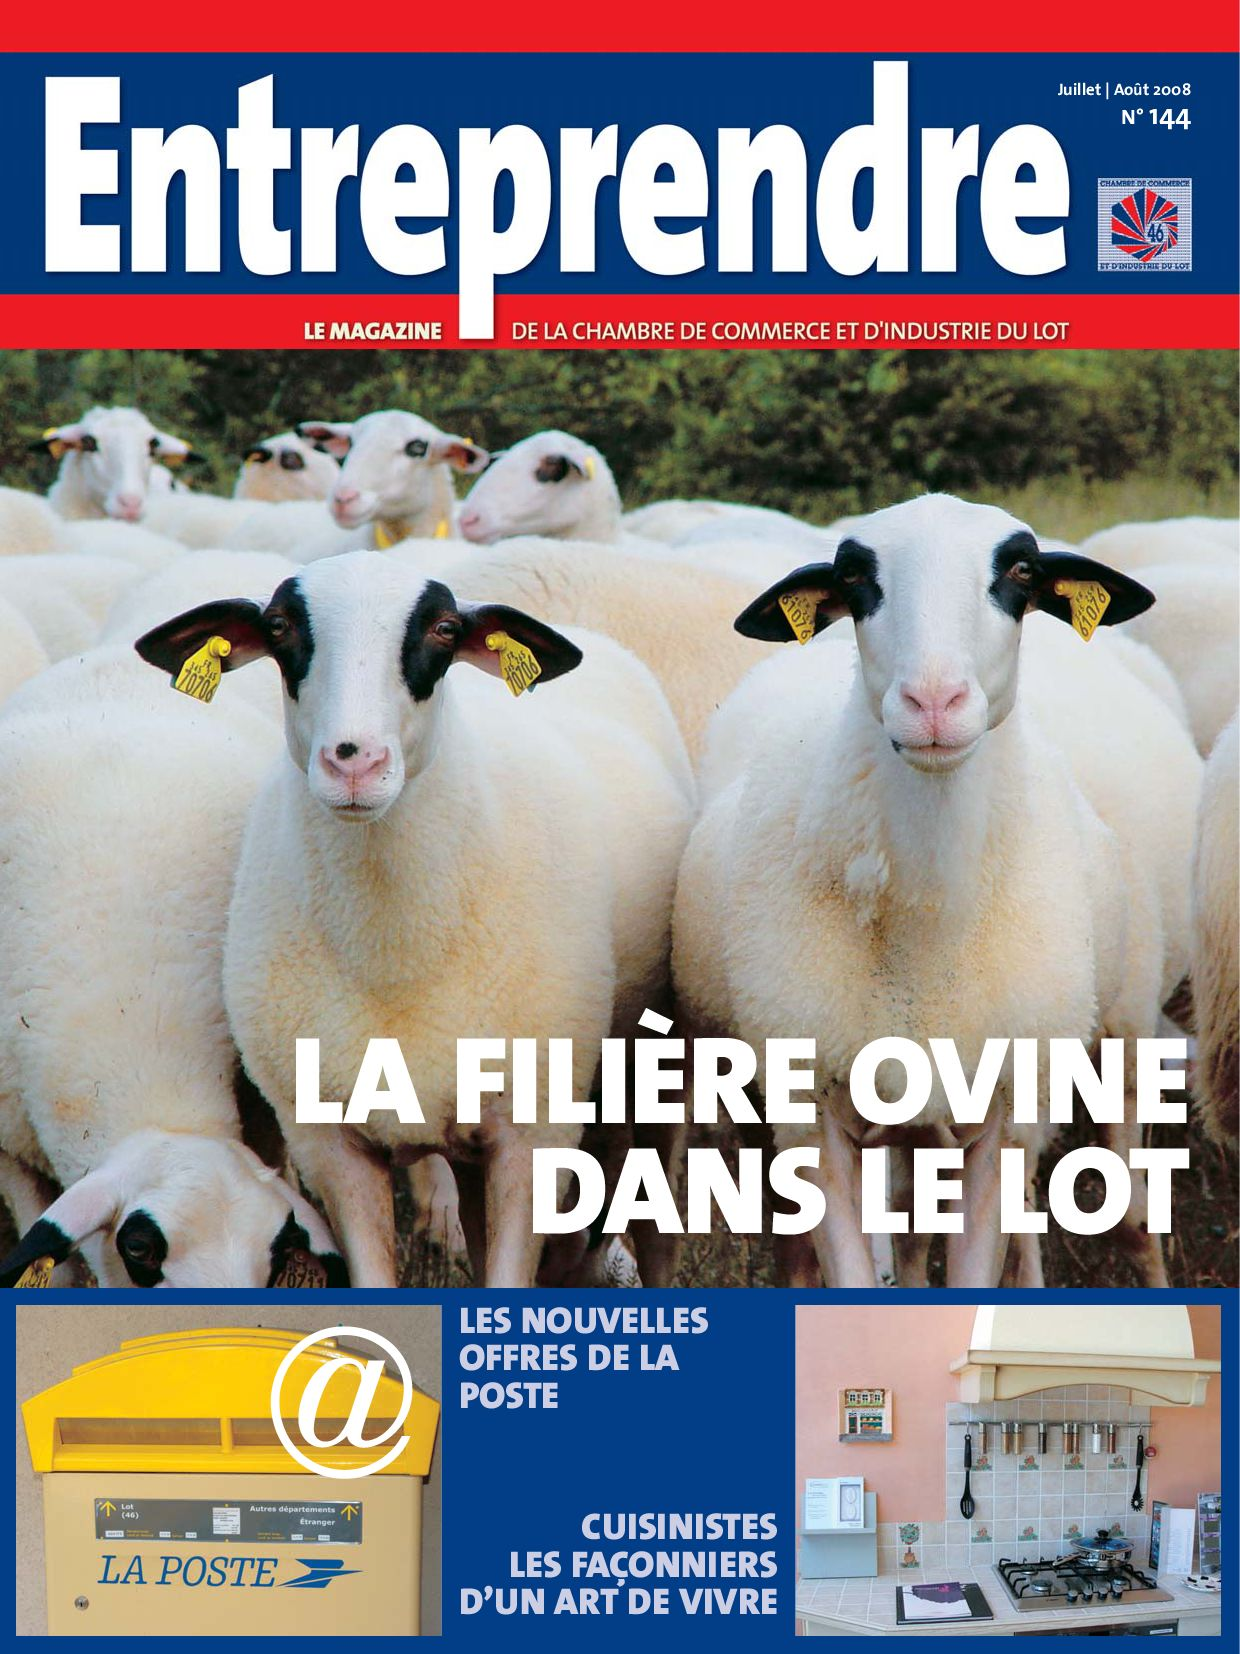 Meubles Rey Figeac Entreprendre 144 By Francois Cadart Issuu